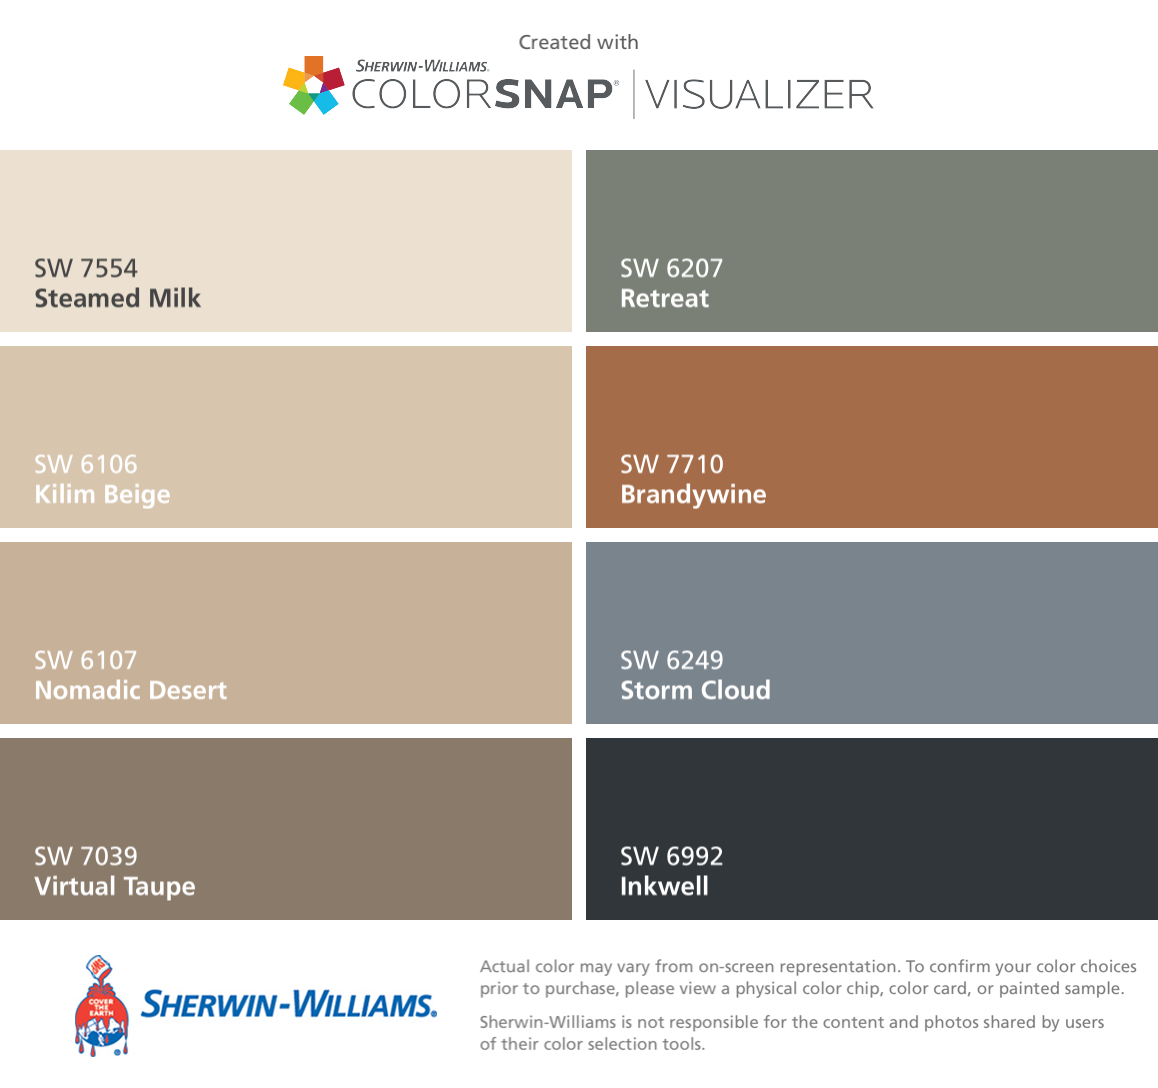 Sherwin williams paint colors sherwin williams 6249 storm cloud - I Found These Colors With Colorsnap Visualizer For Iphone By Sherwin Williams Steamed Storm Cloudsaccent